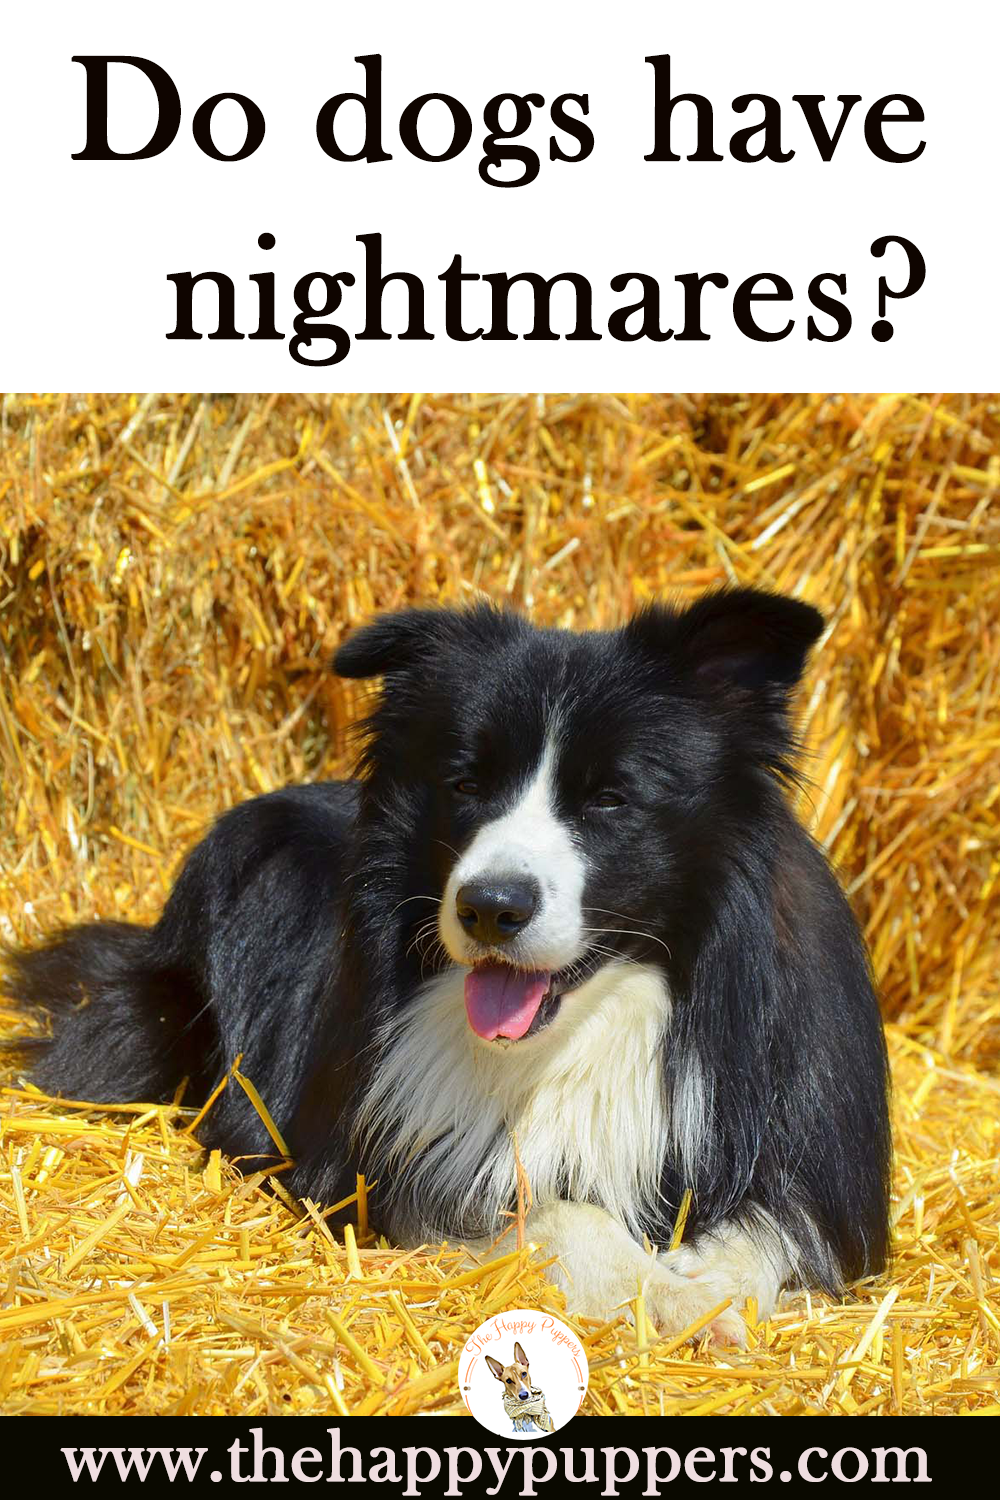 Why dogs have nightmares and how to help